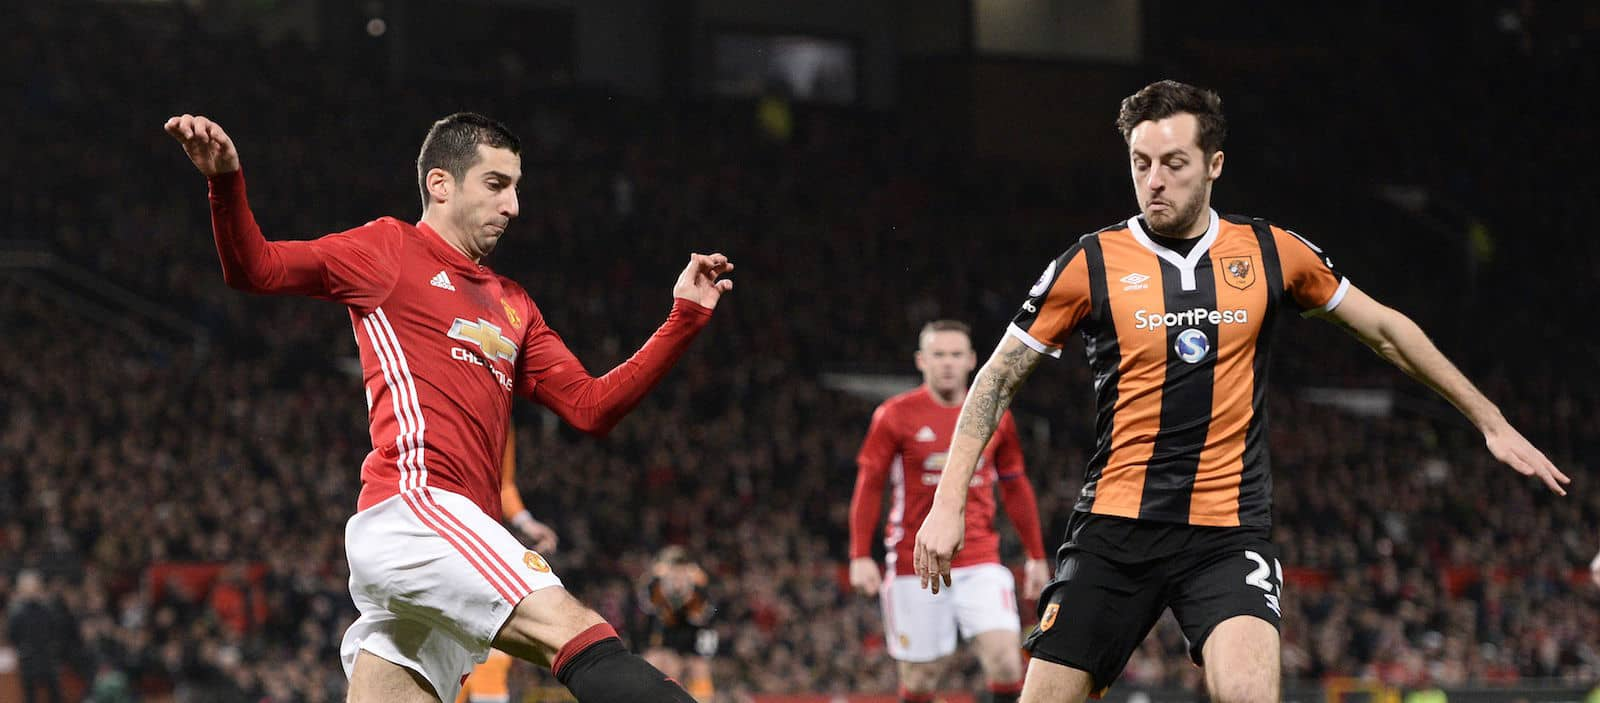 Henrikh Mkhitaryan enjoys impressive display against Hull City